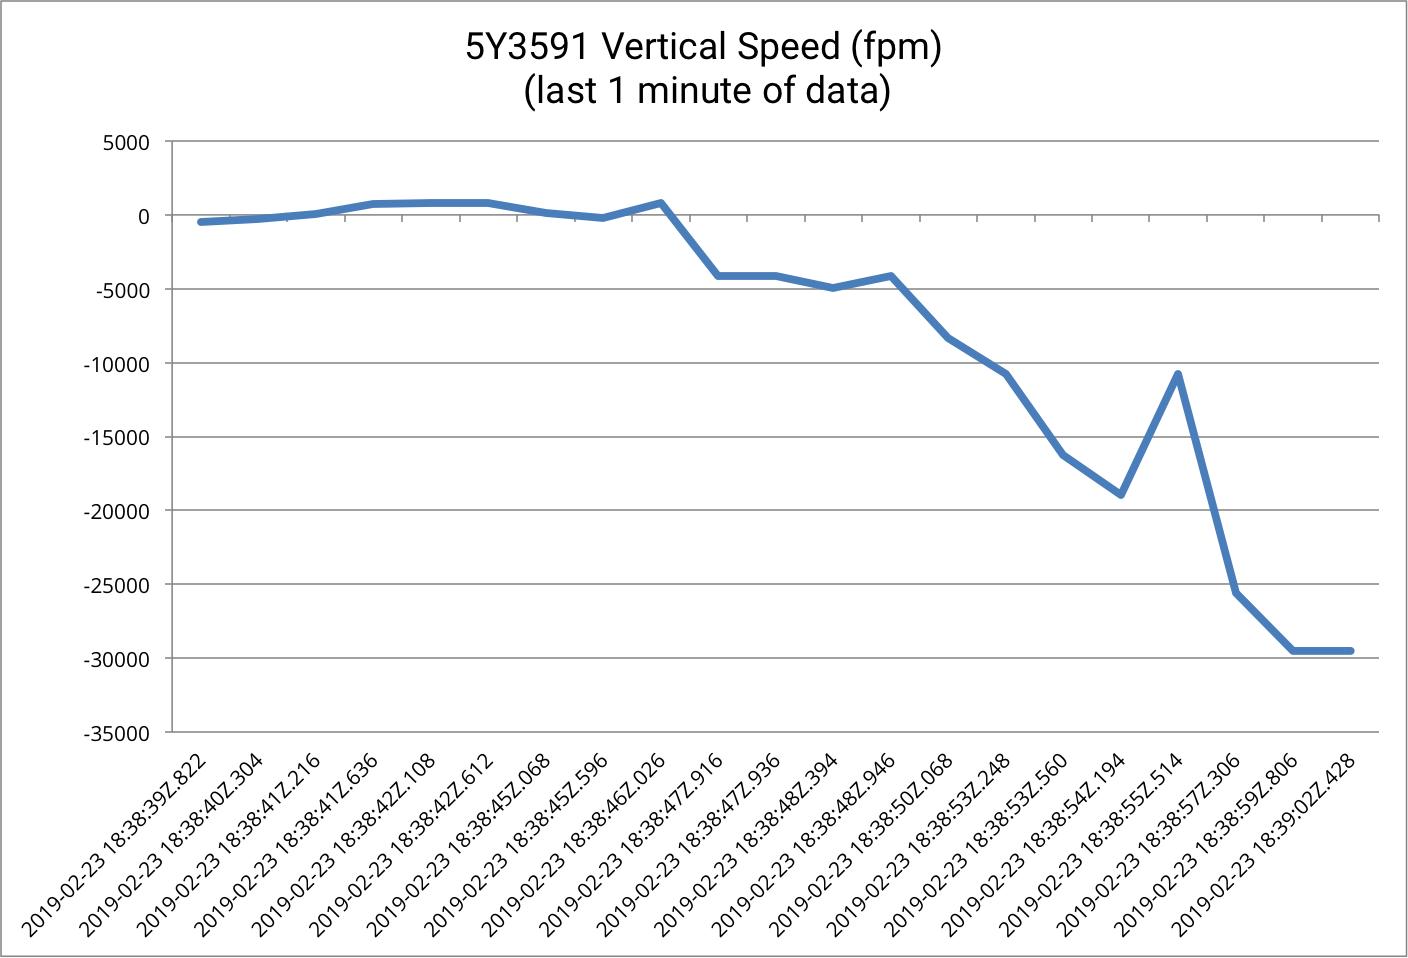 Vertical speed for the last minute of flight